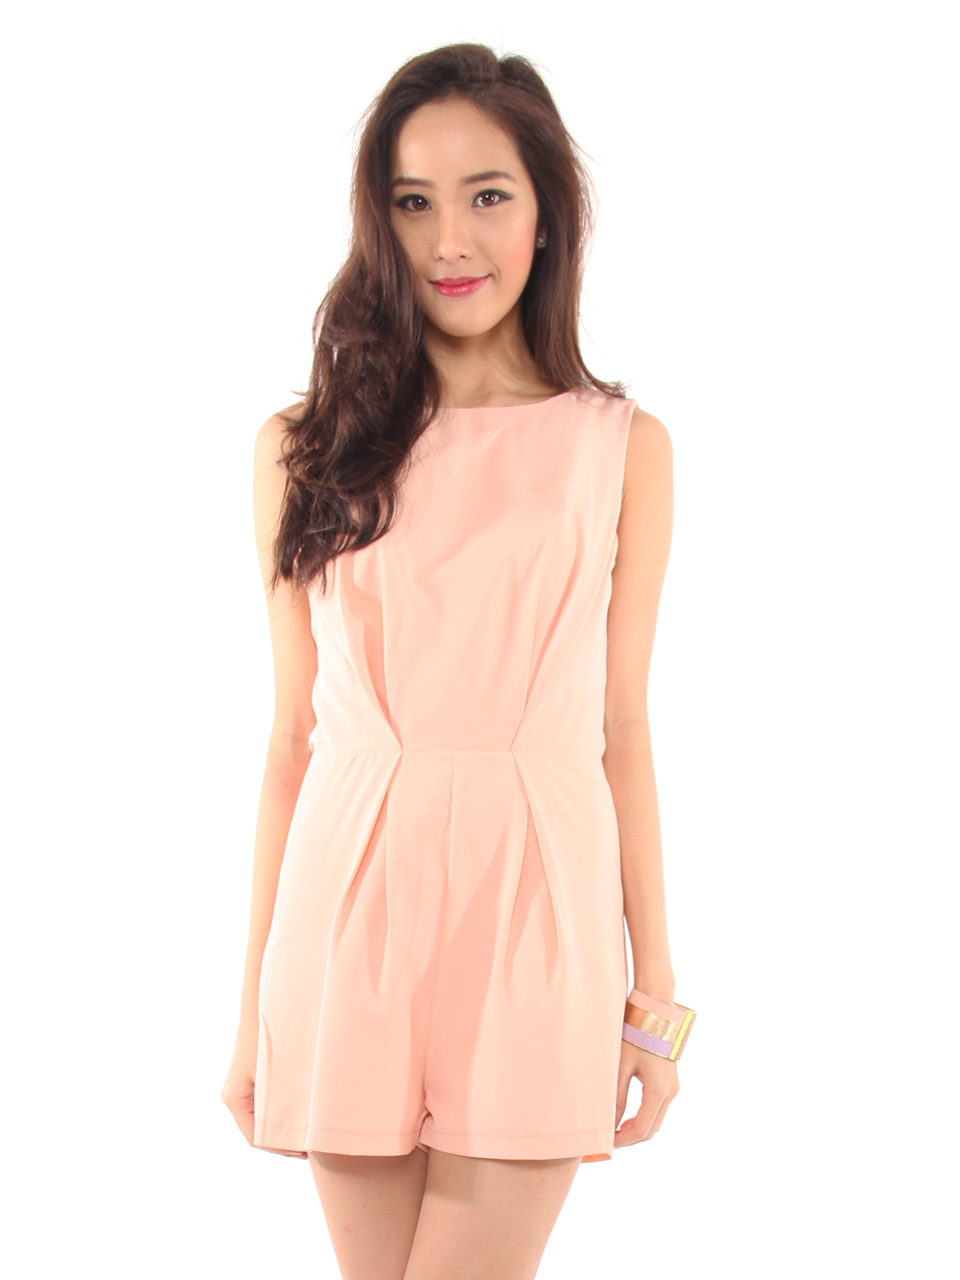 Romantic Lace Back Romper in Peach Pink   Red Poppiez     Chic Kiss Love